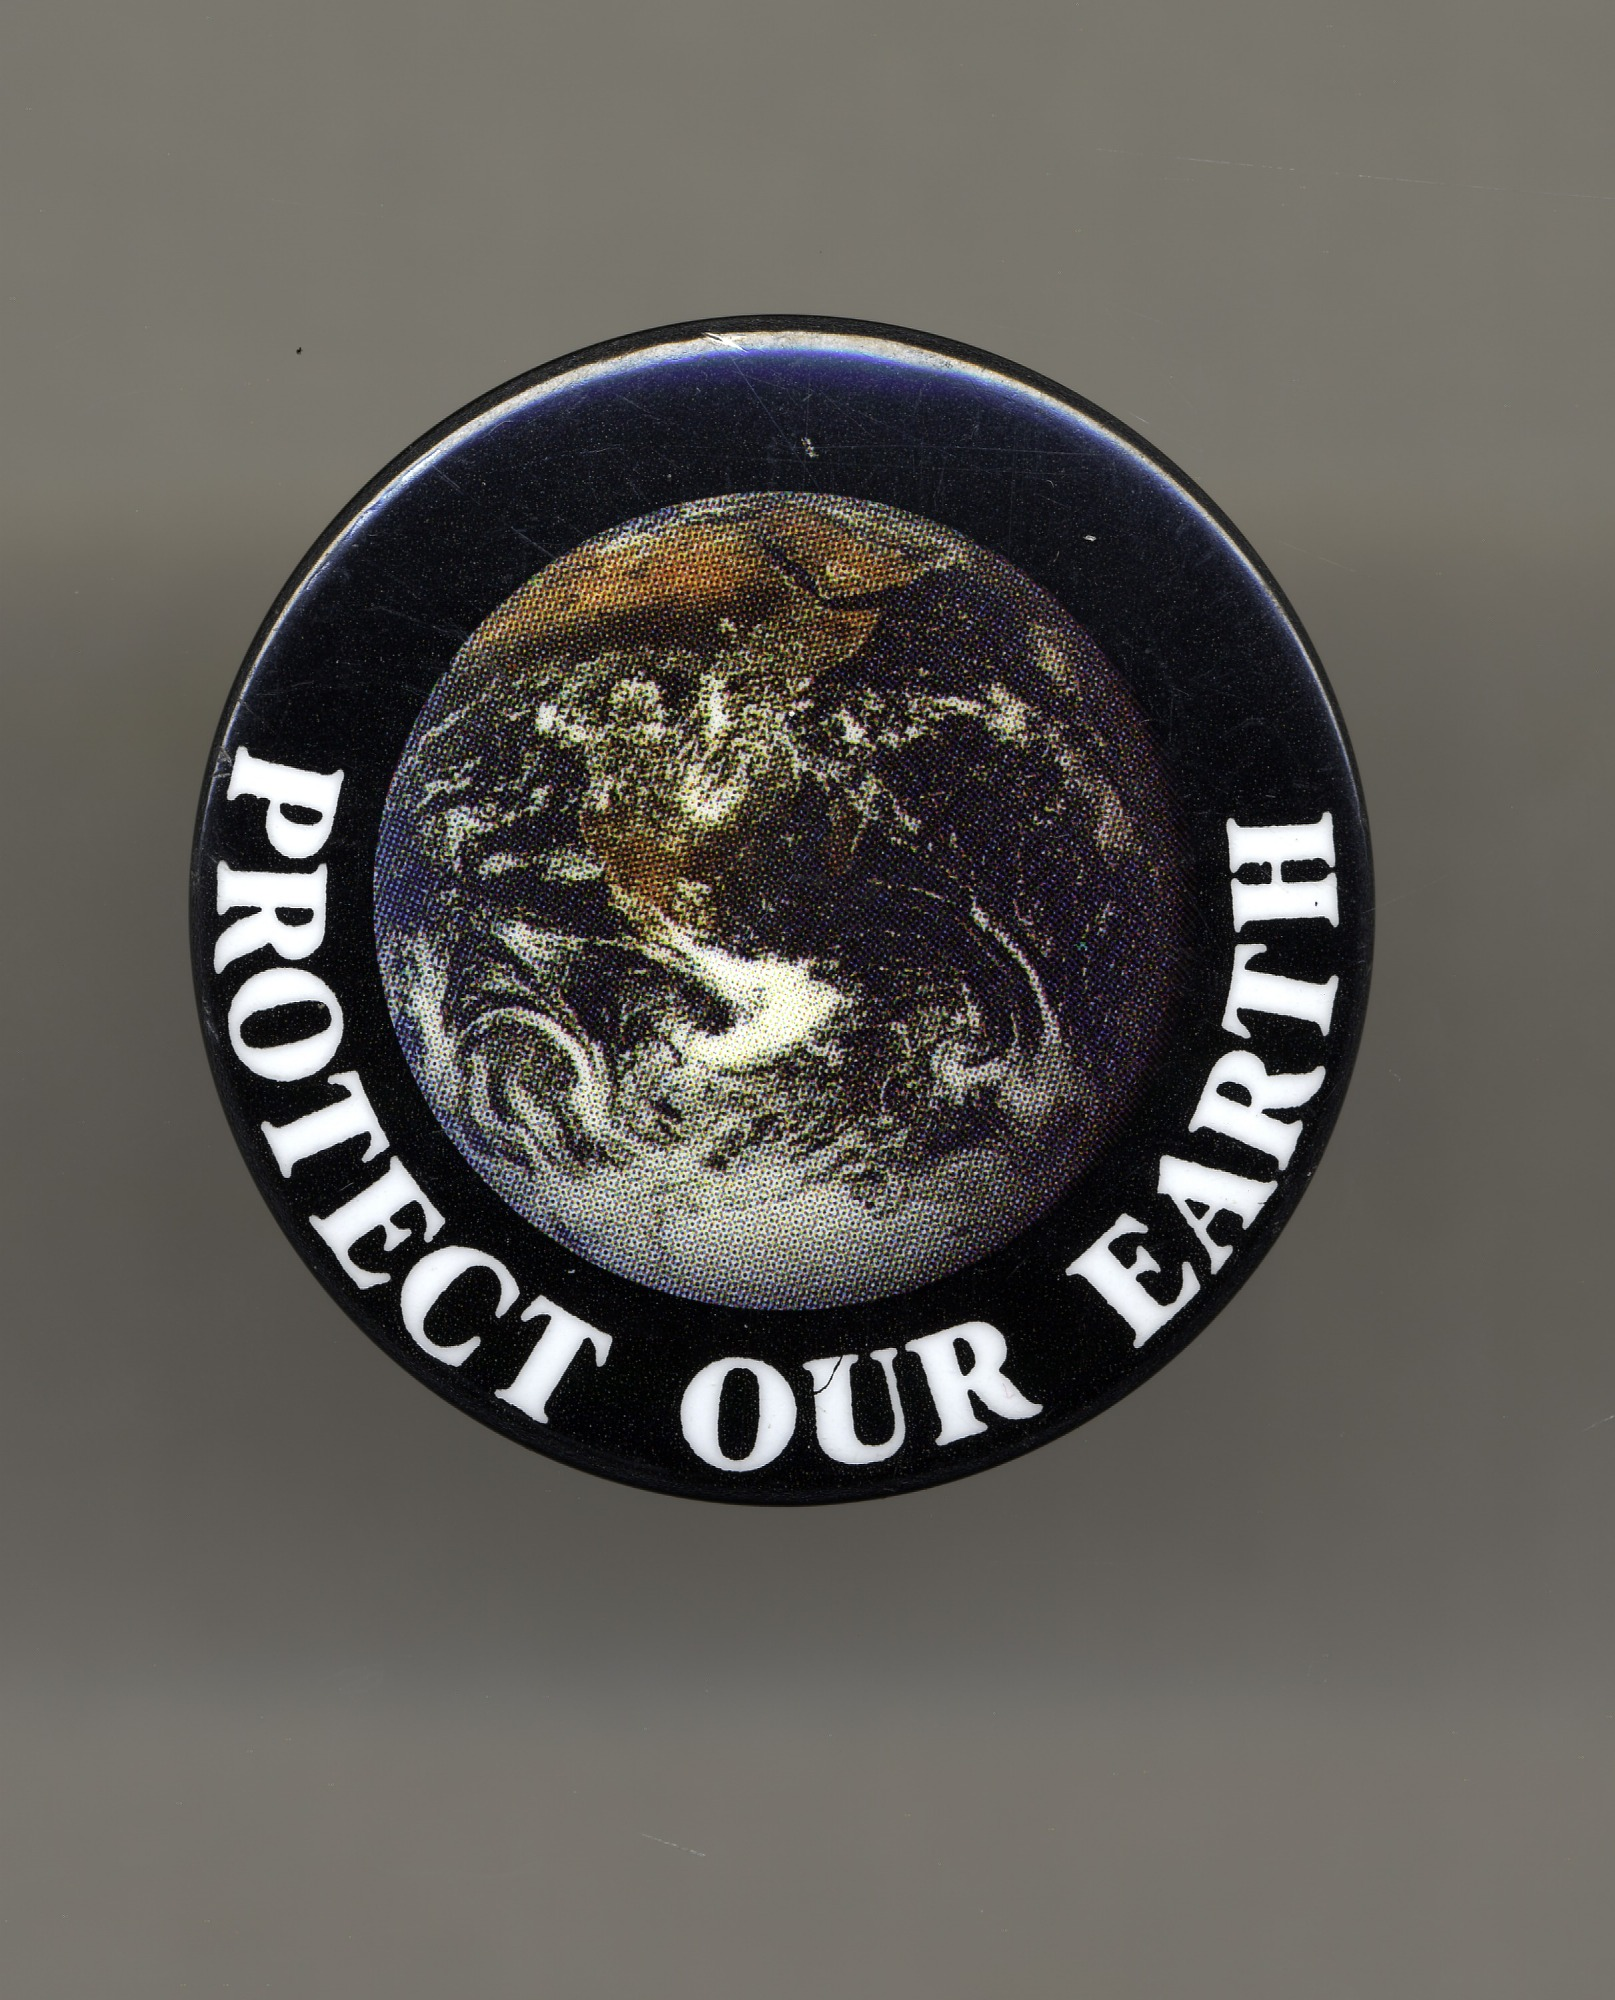 Take A Look At Posters Buttons Stamps And Other Environmental Objects From Our Collections